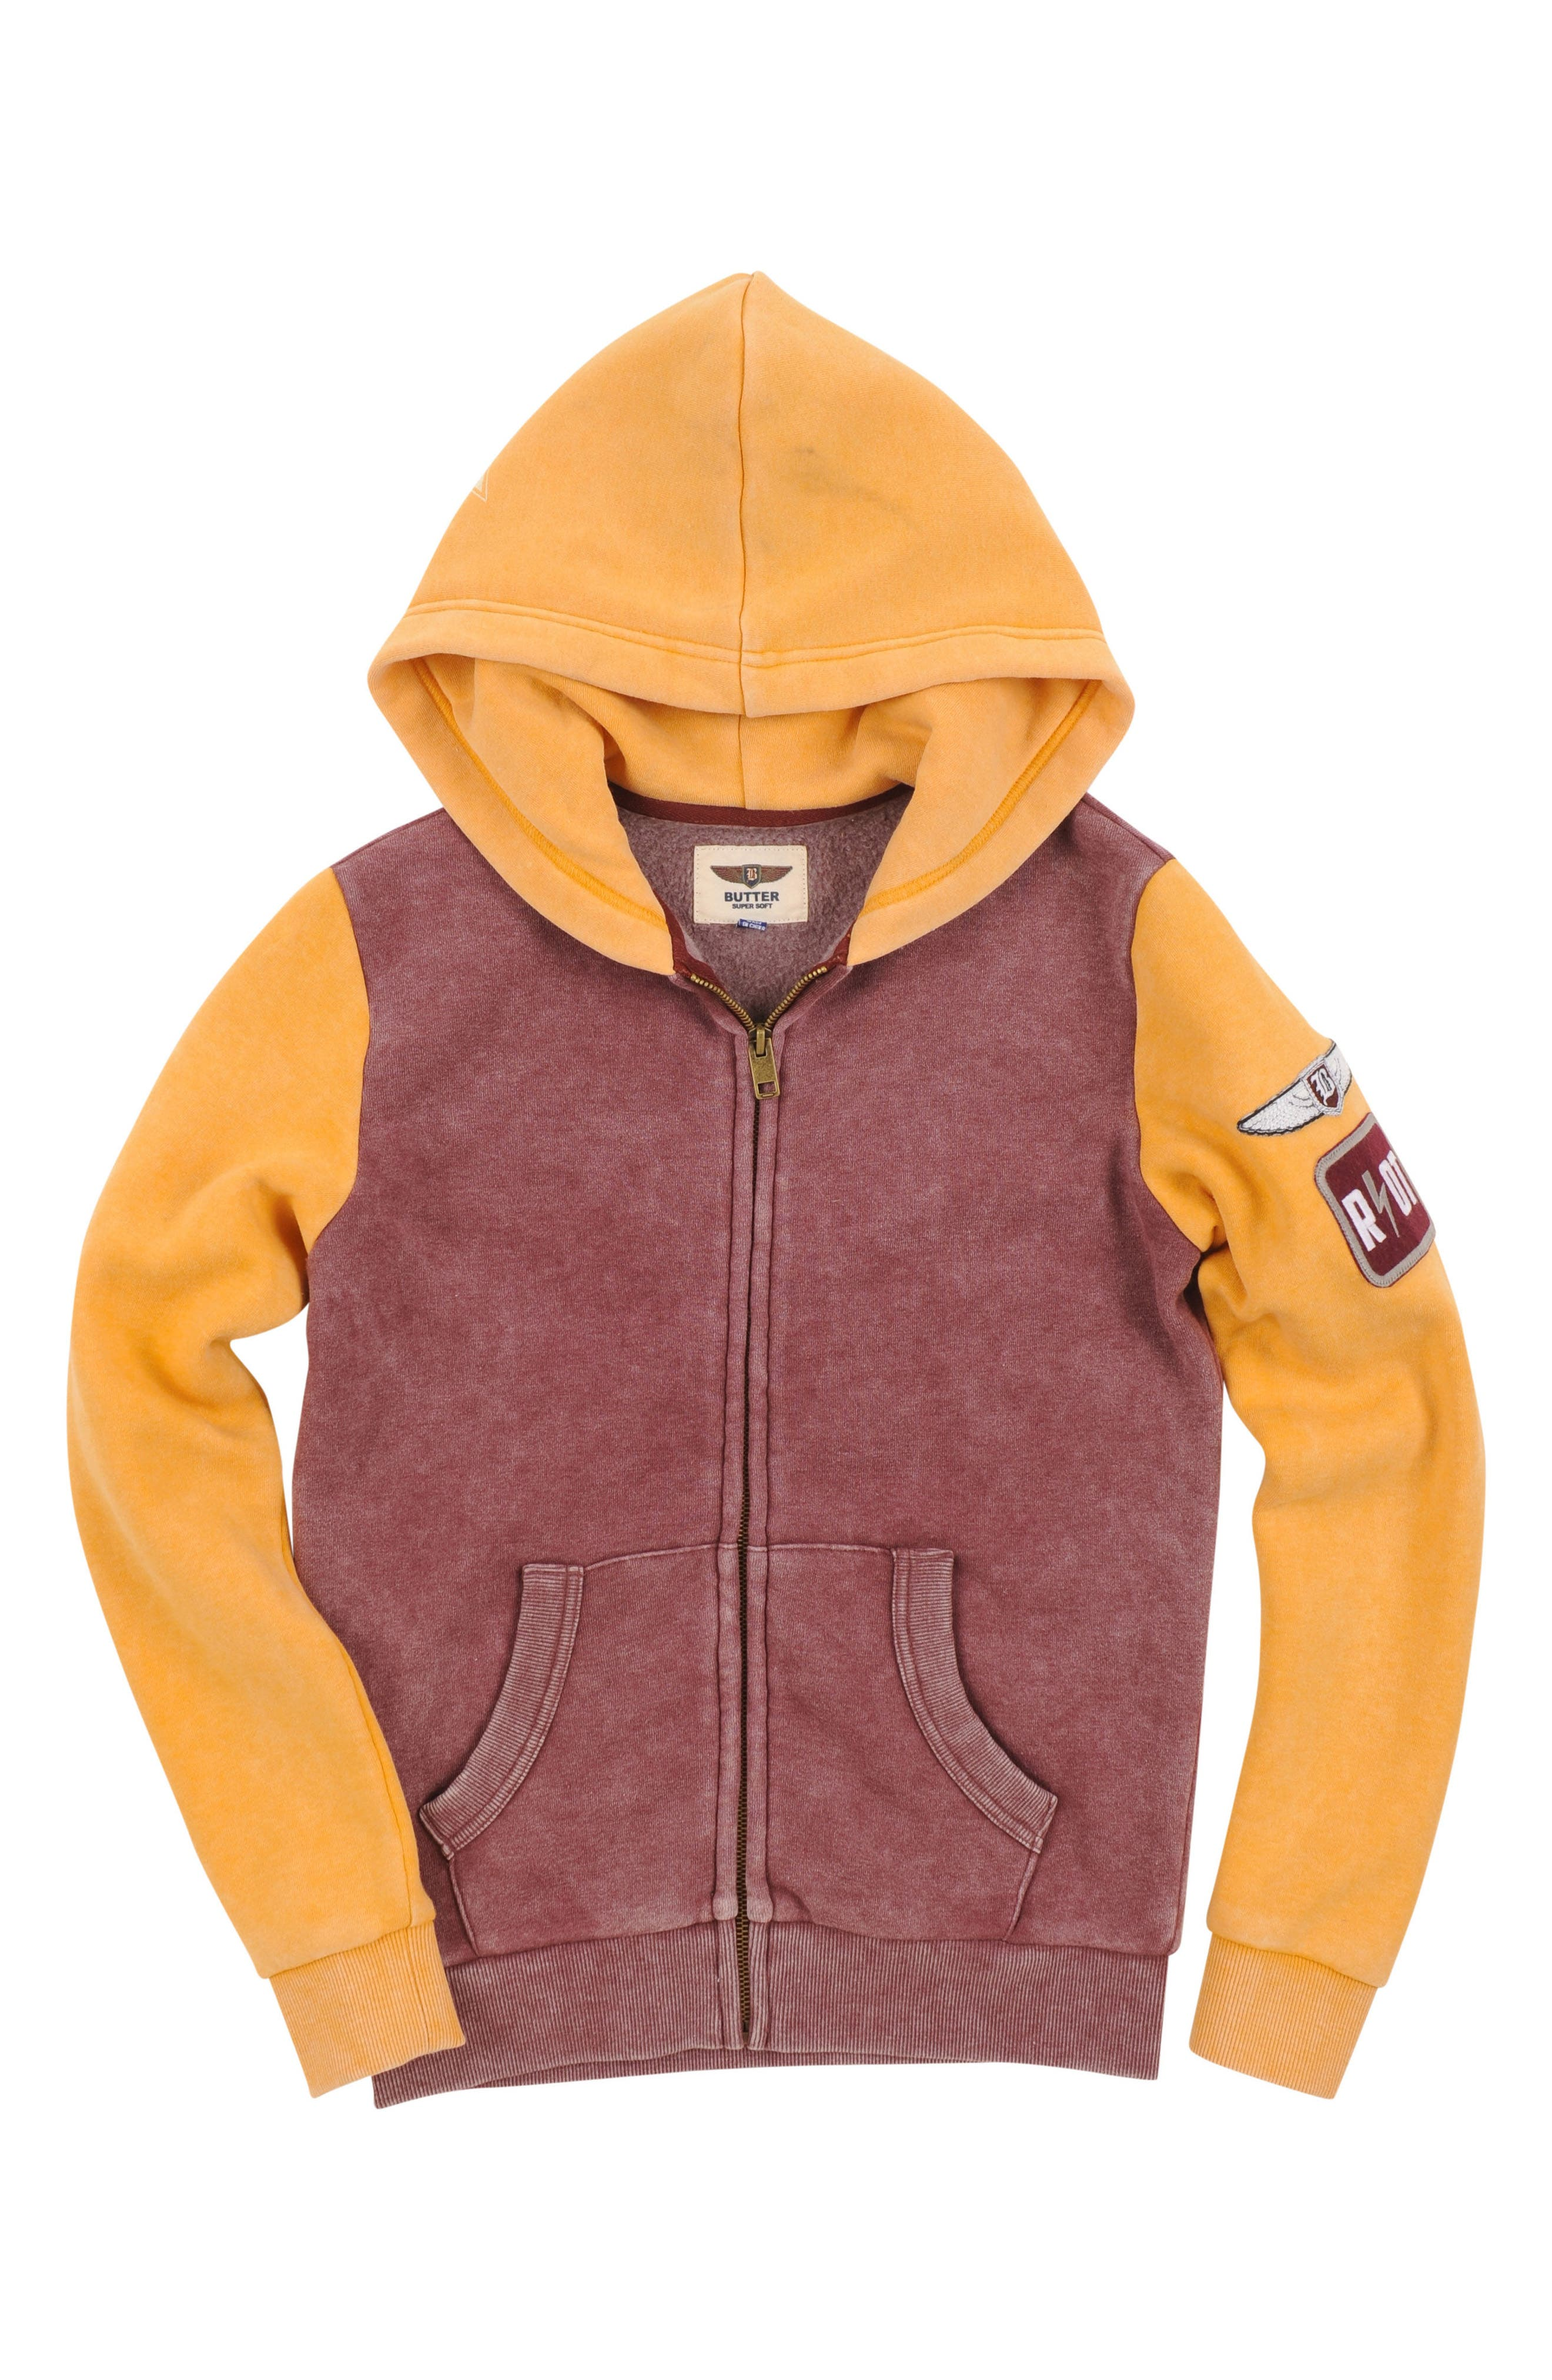 Butter Super Soft Colorblock Zip Hoodie (Big Boys)